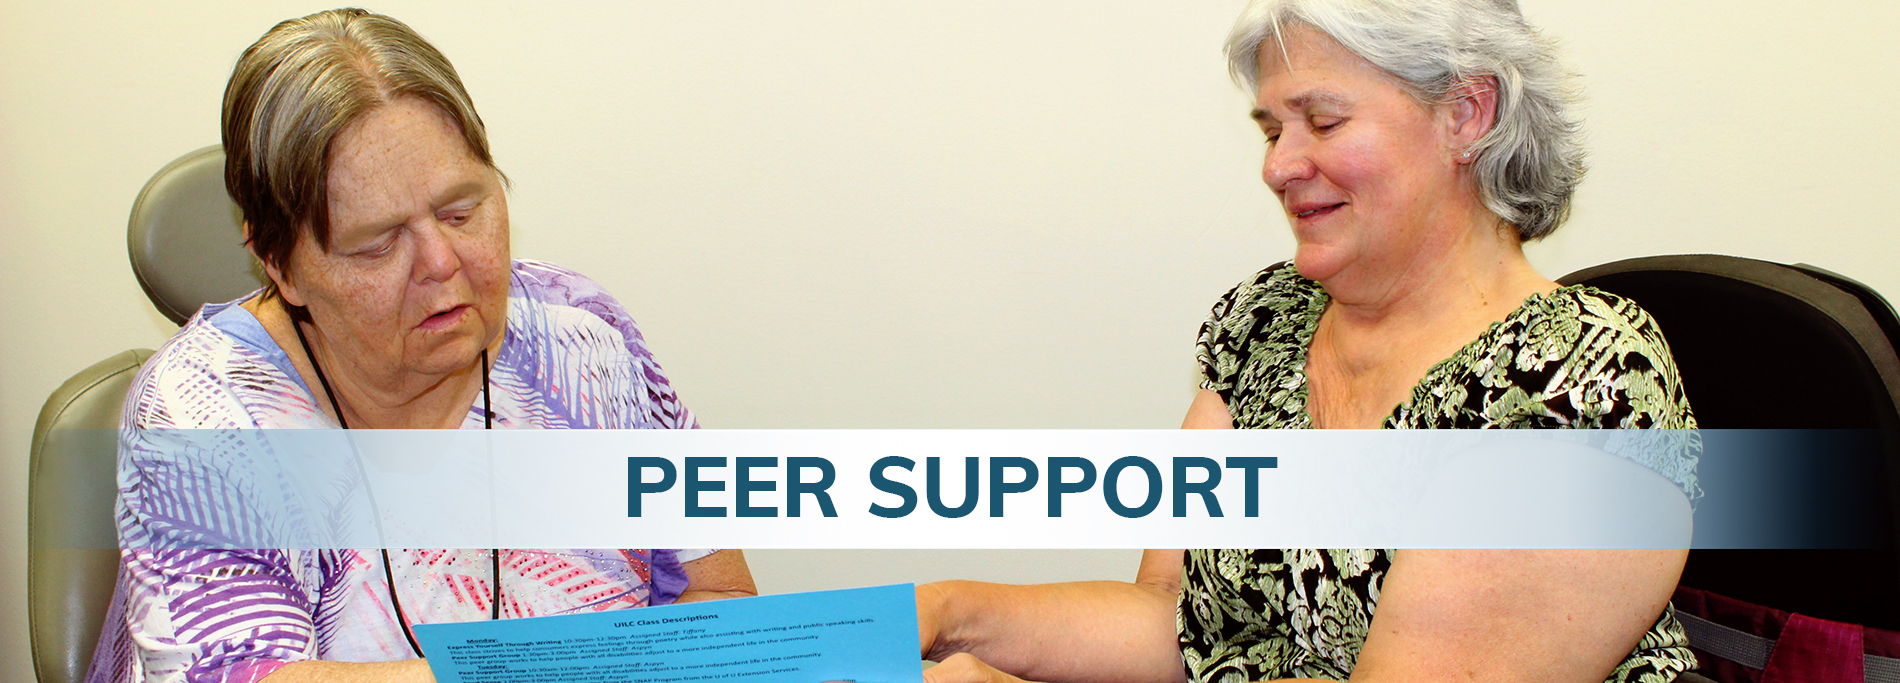 Peer Support - Header